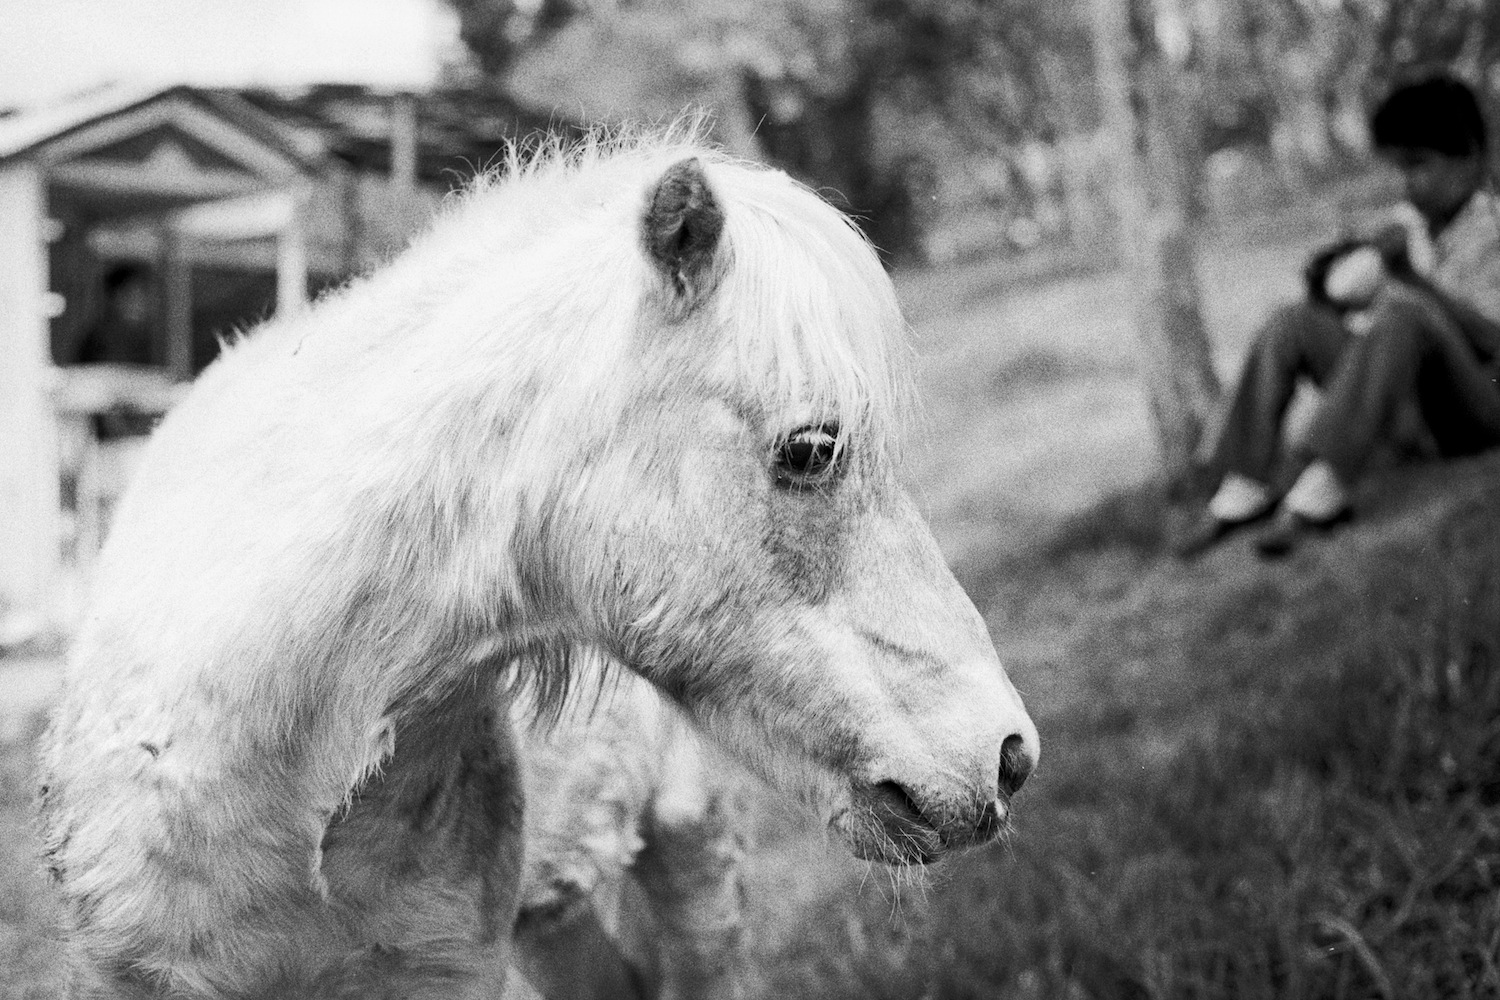 Shot with a Nikon F3 in Mexico. The boy in the background worked at the stable and was taking a break.